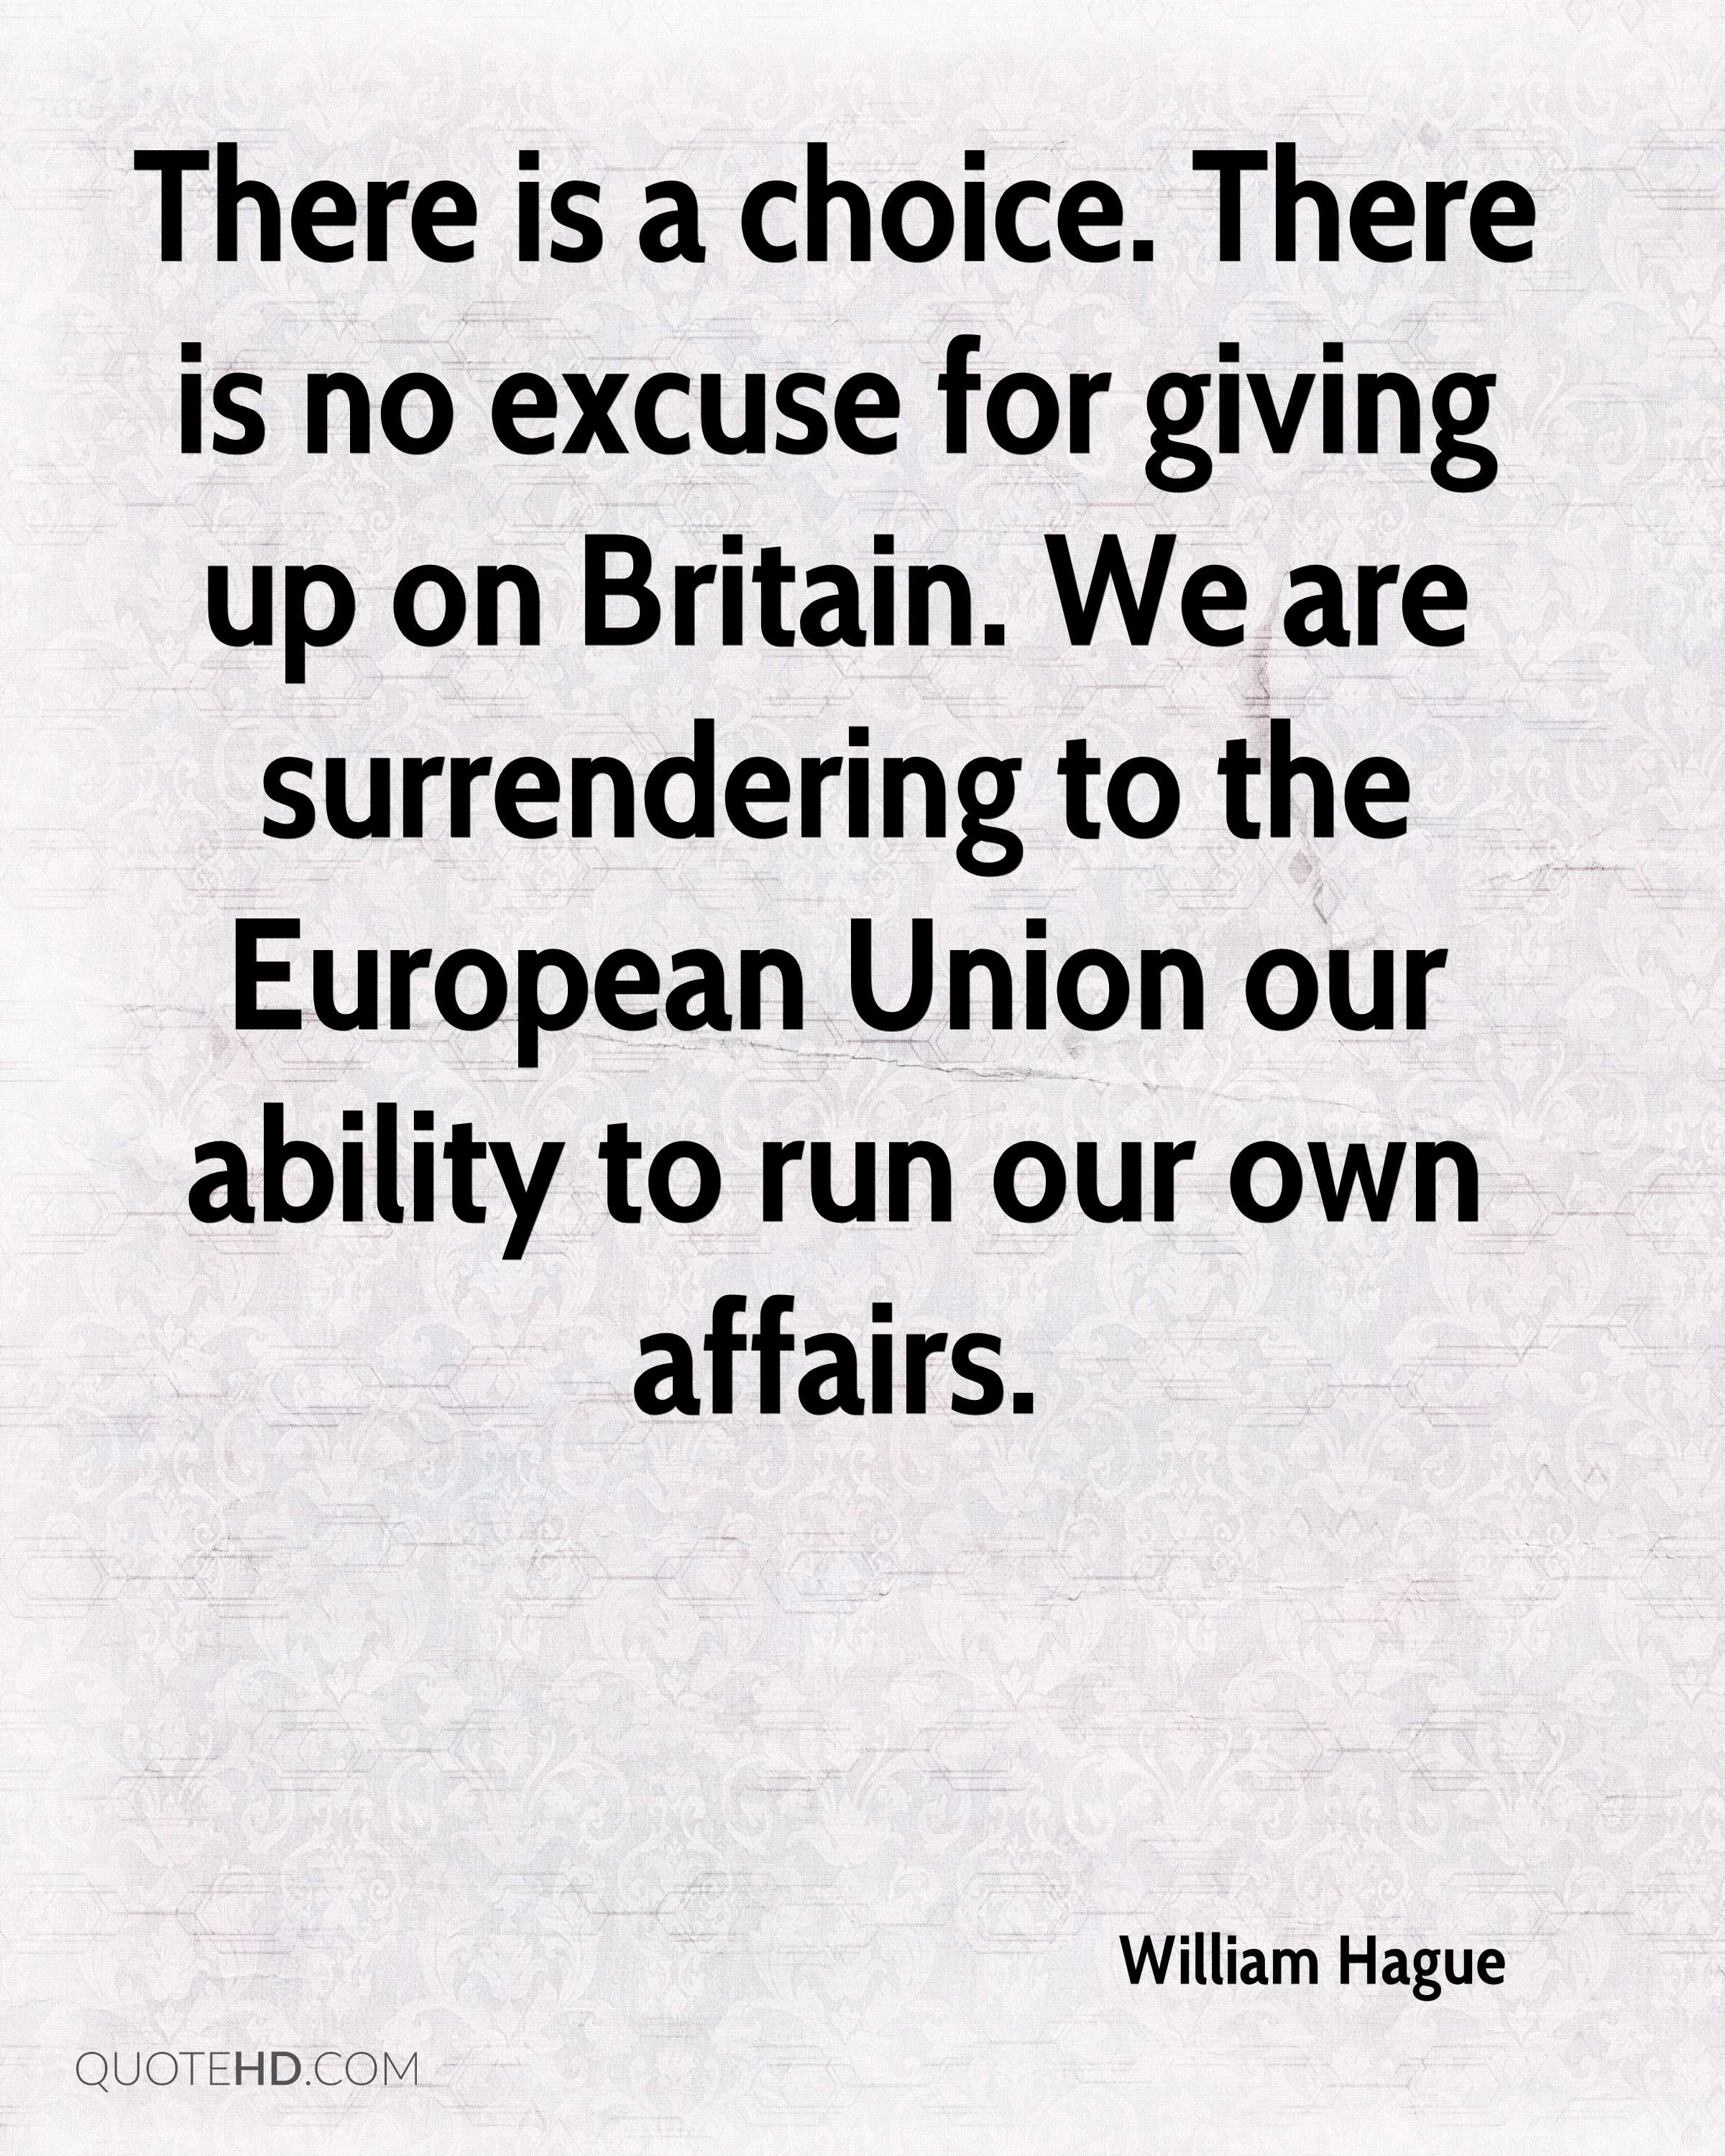 There is a choice. There is no excuse for giving up on Britain. We are surrendering to the European Union our ability to run our own affairs.